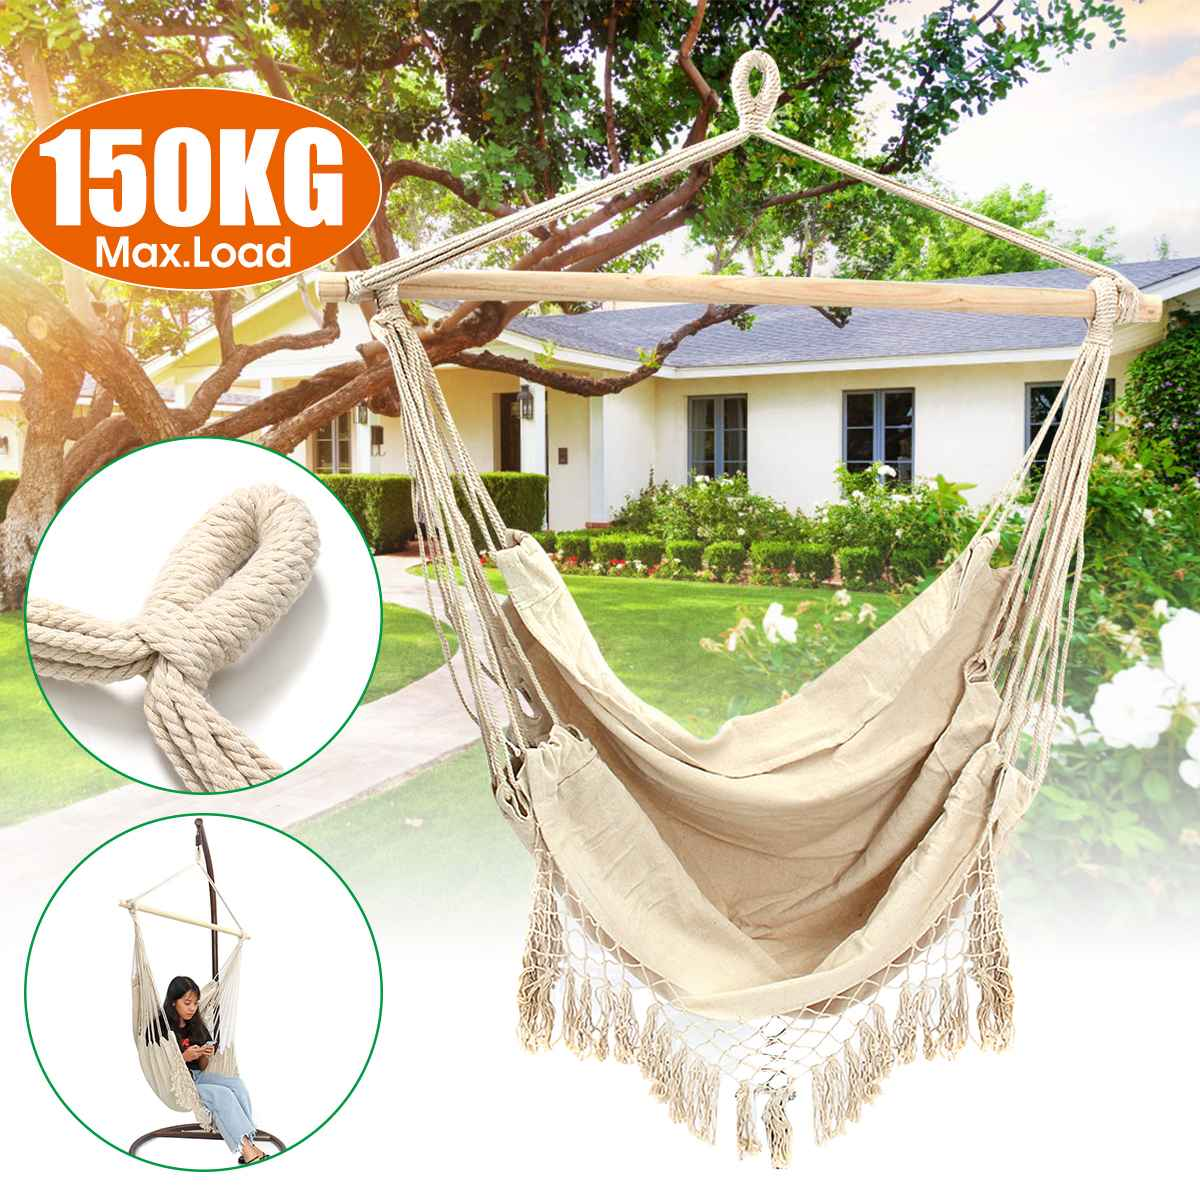 Nordic Style Hammock Outdoor Indoor Furniture Garden Swing for Adult Children Swinging Chair with Wooden Stick|Hammocks| |  - title=